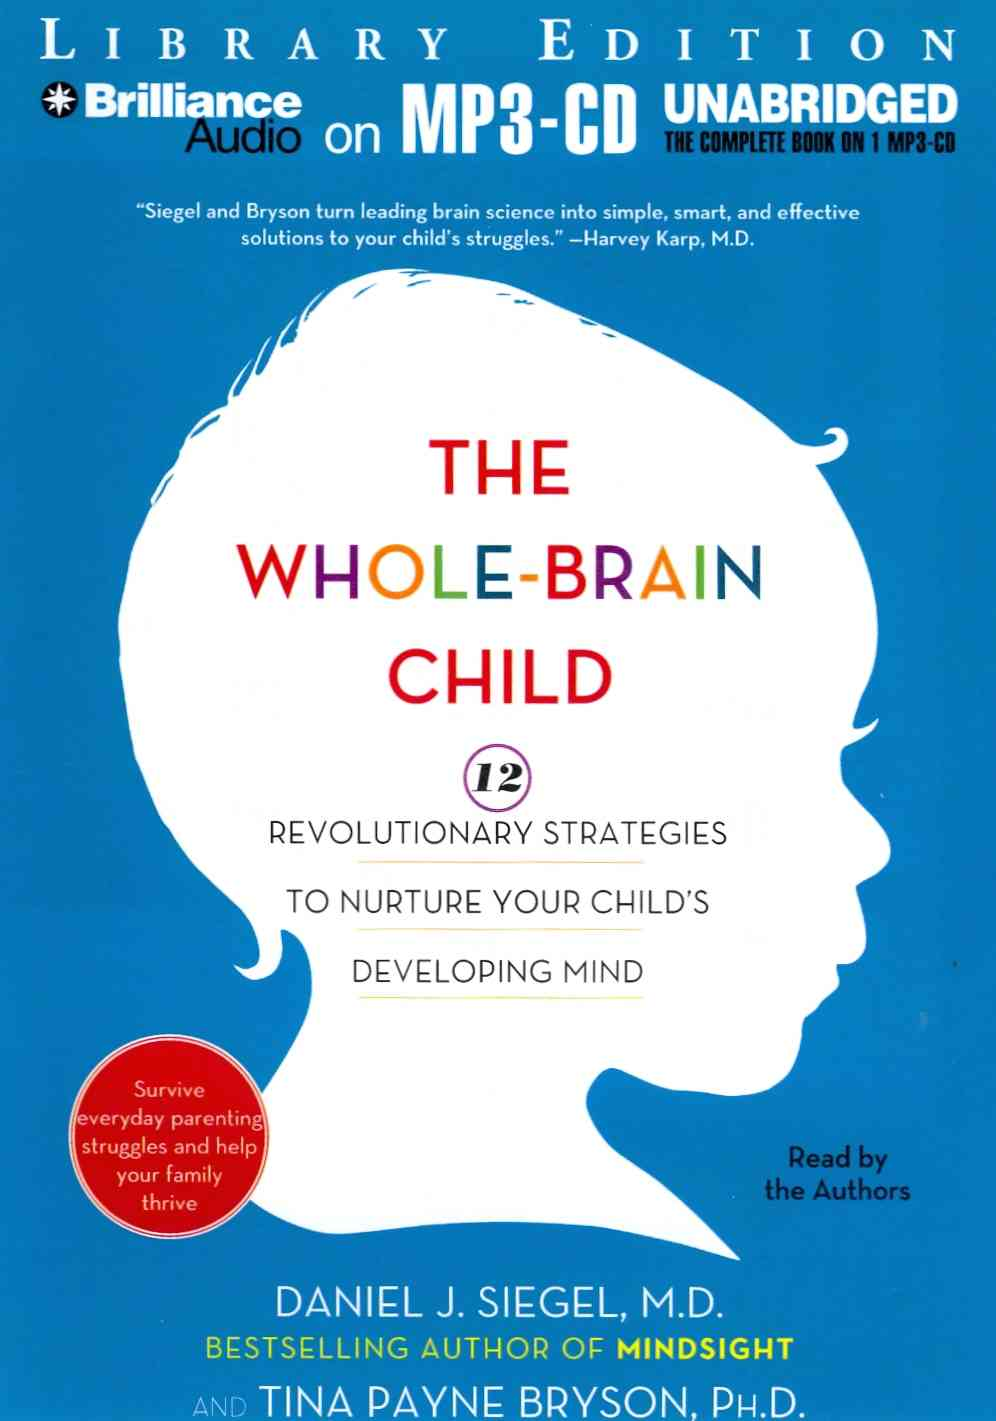 The Whole-Brain Child: 12 Revolutionary Strategies to Nurture Your Child's Developing Mind: Survive Everyday Paren... (CD-Audio)